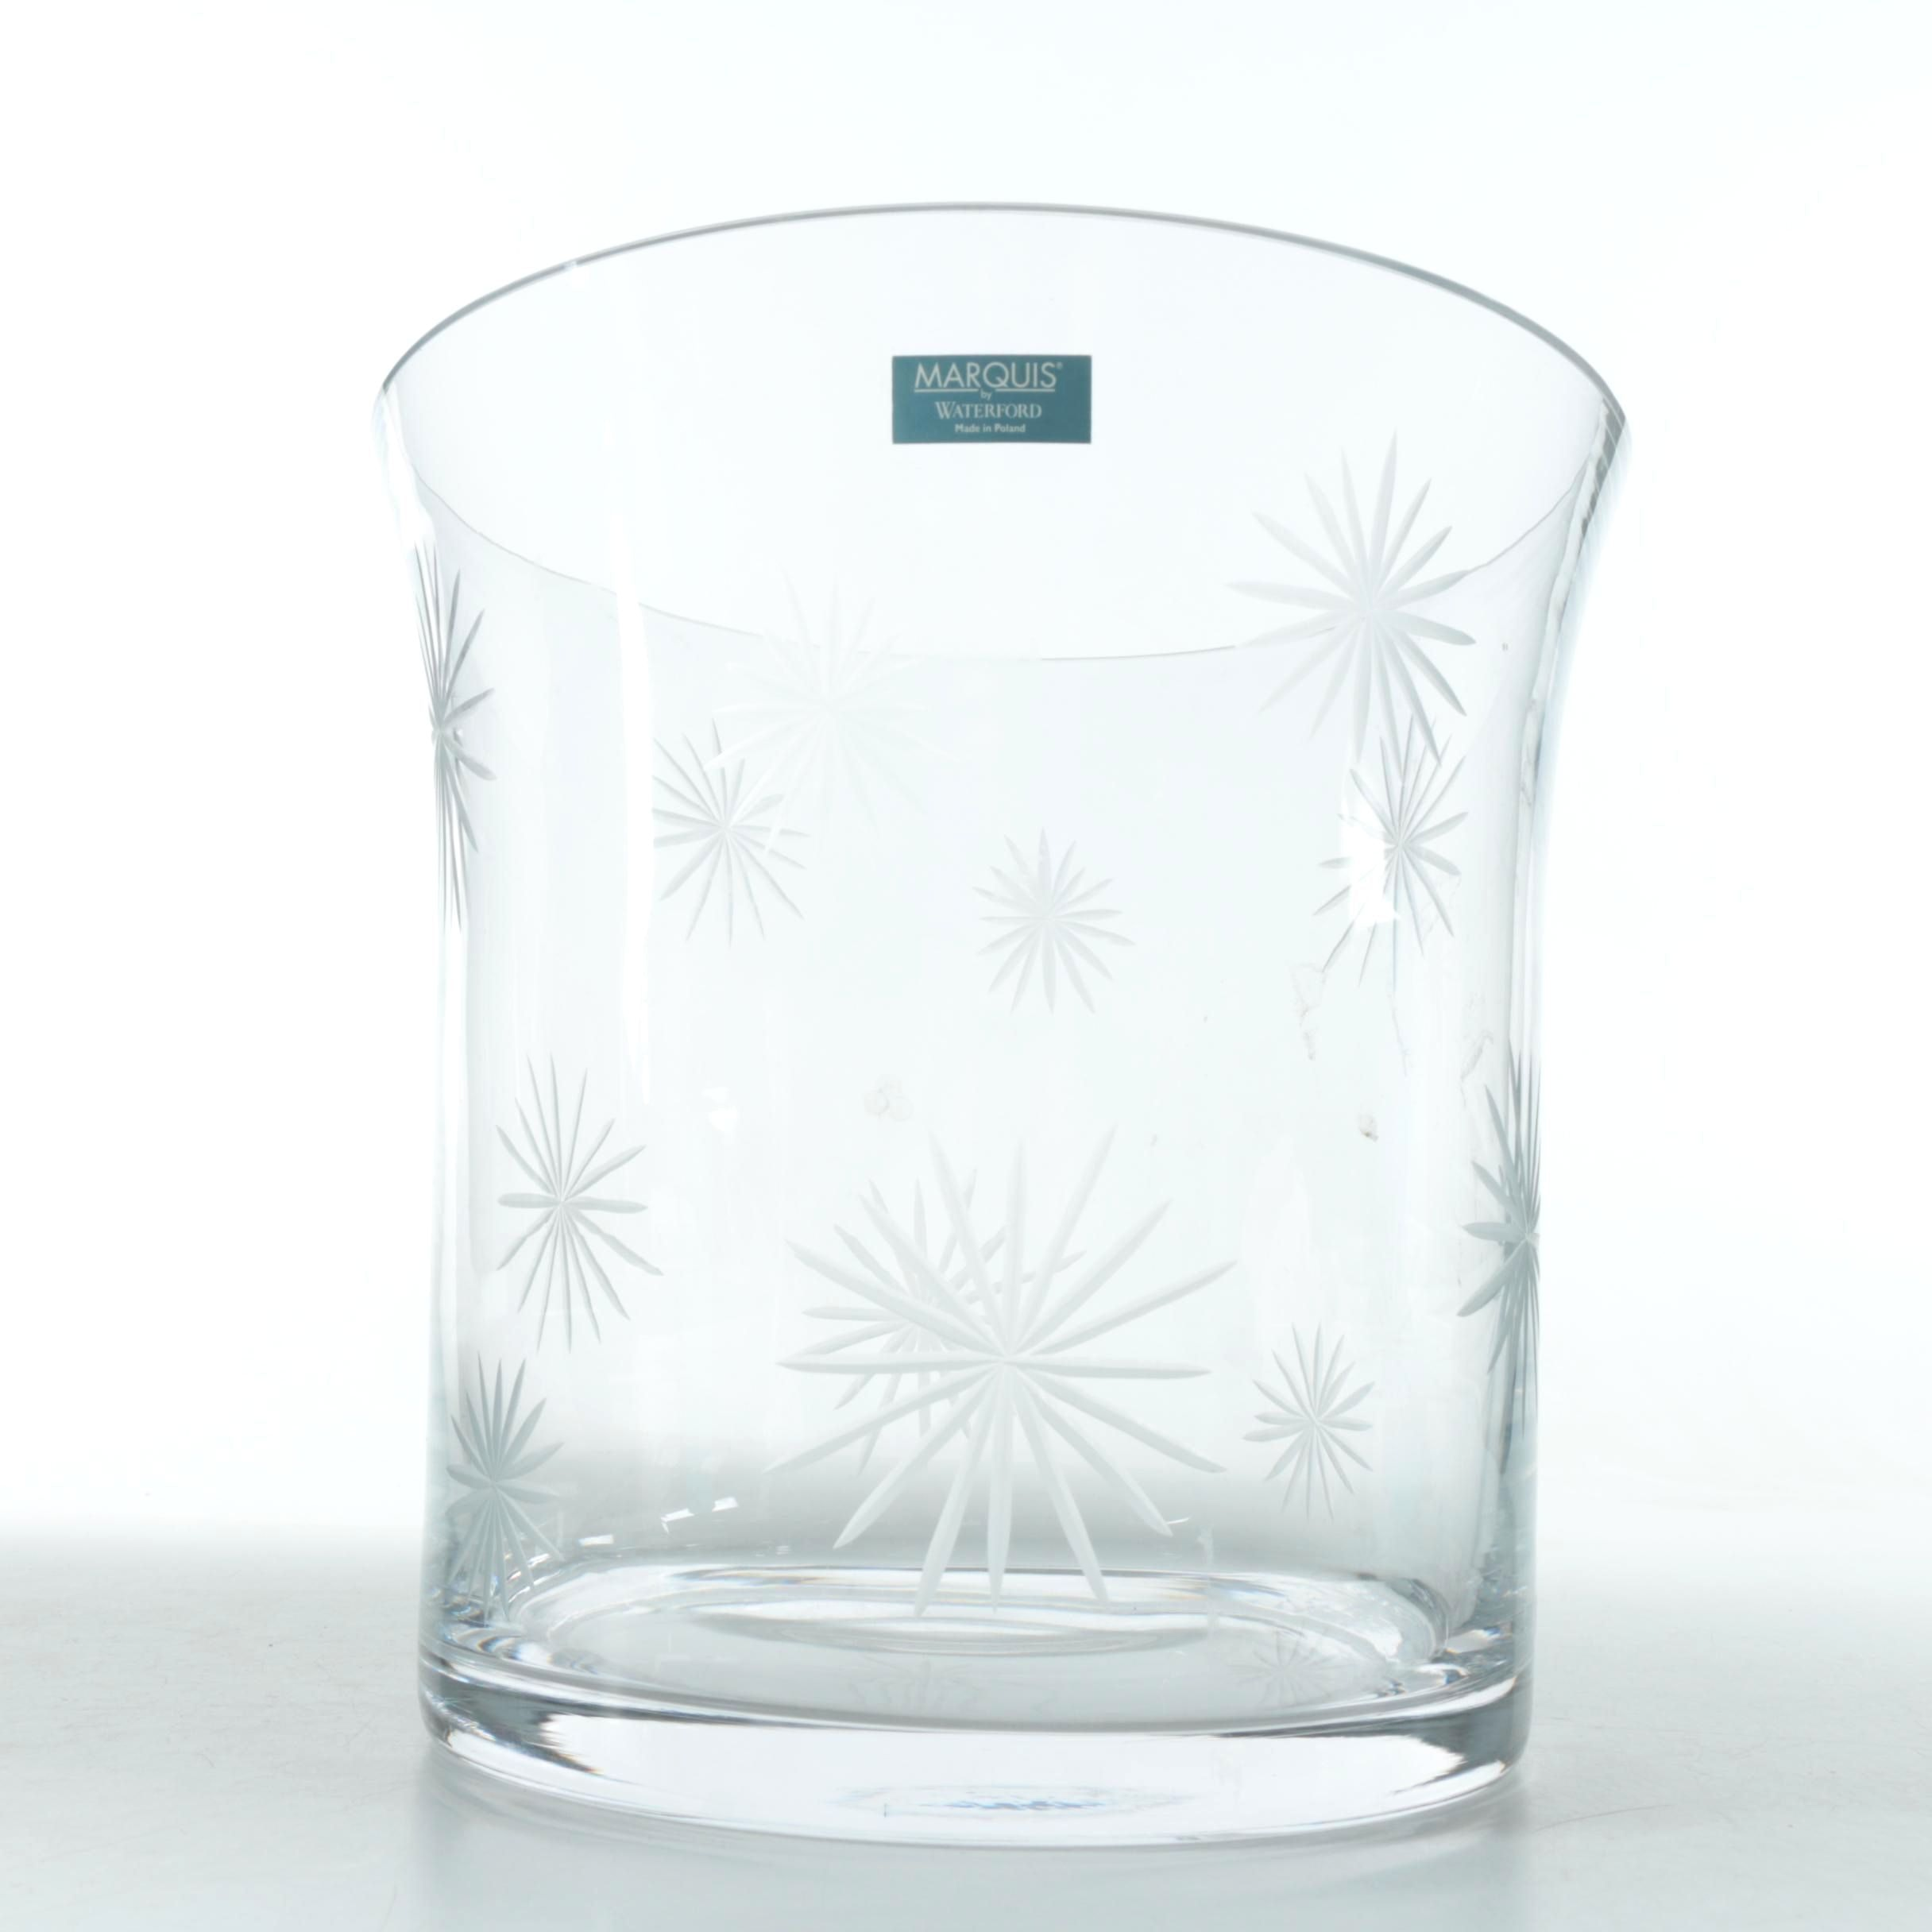 Marquis by Waterford Crystal Star Pattern Ice Bucket